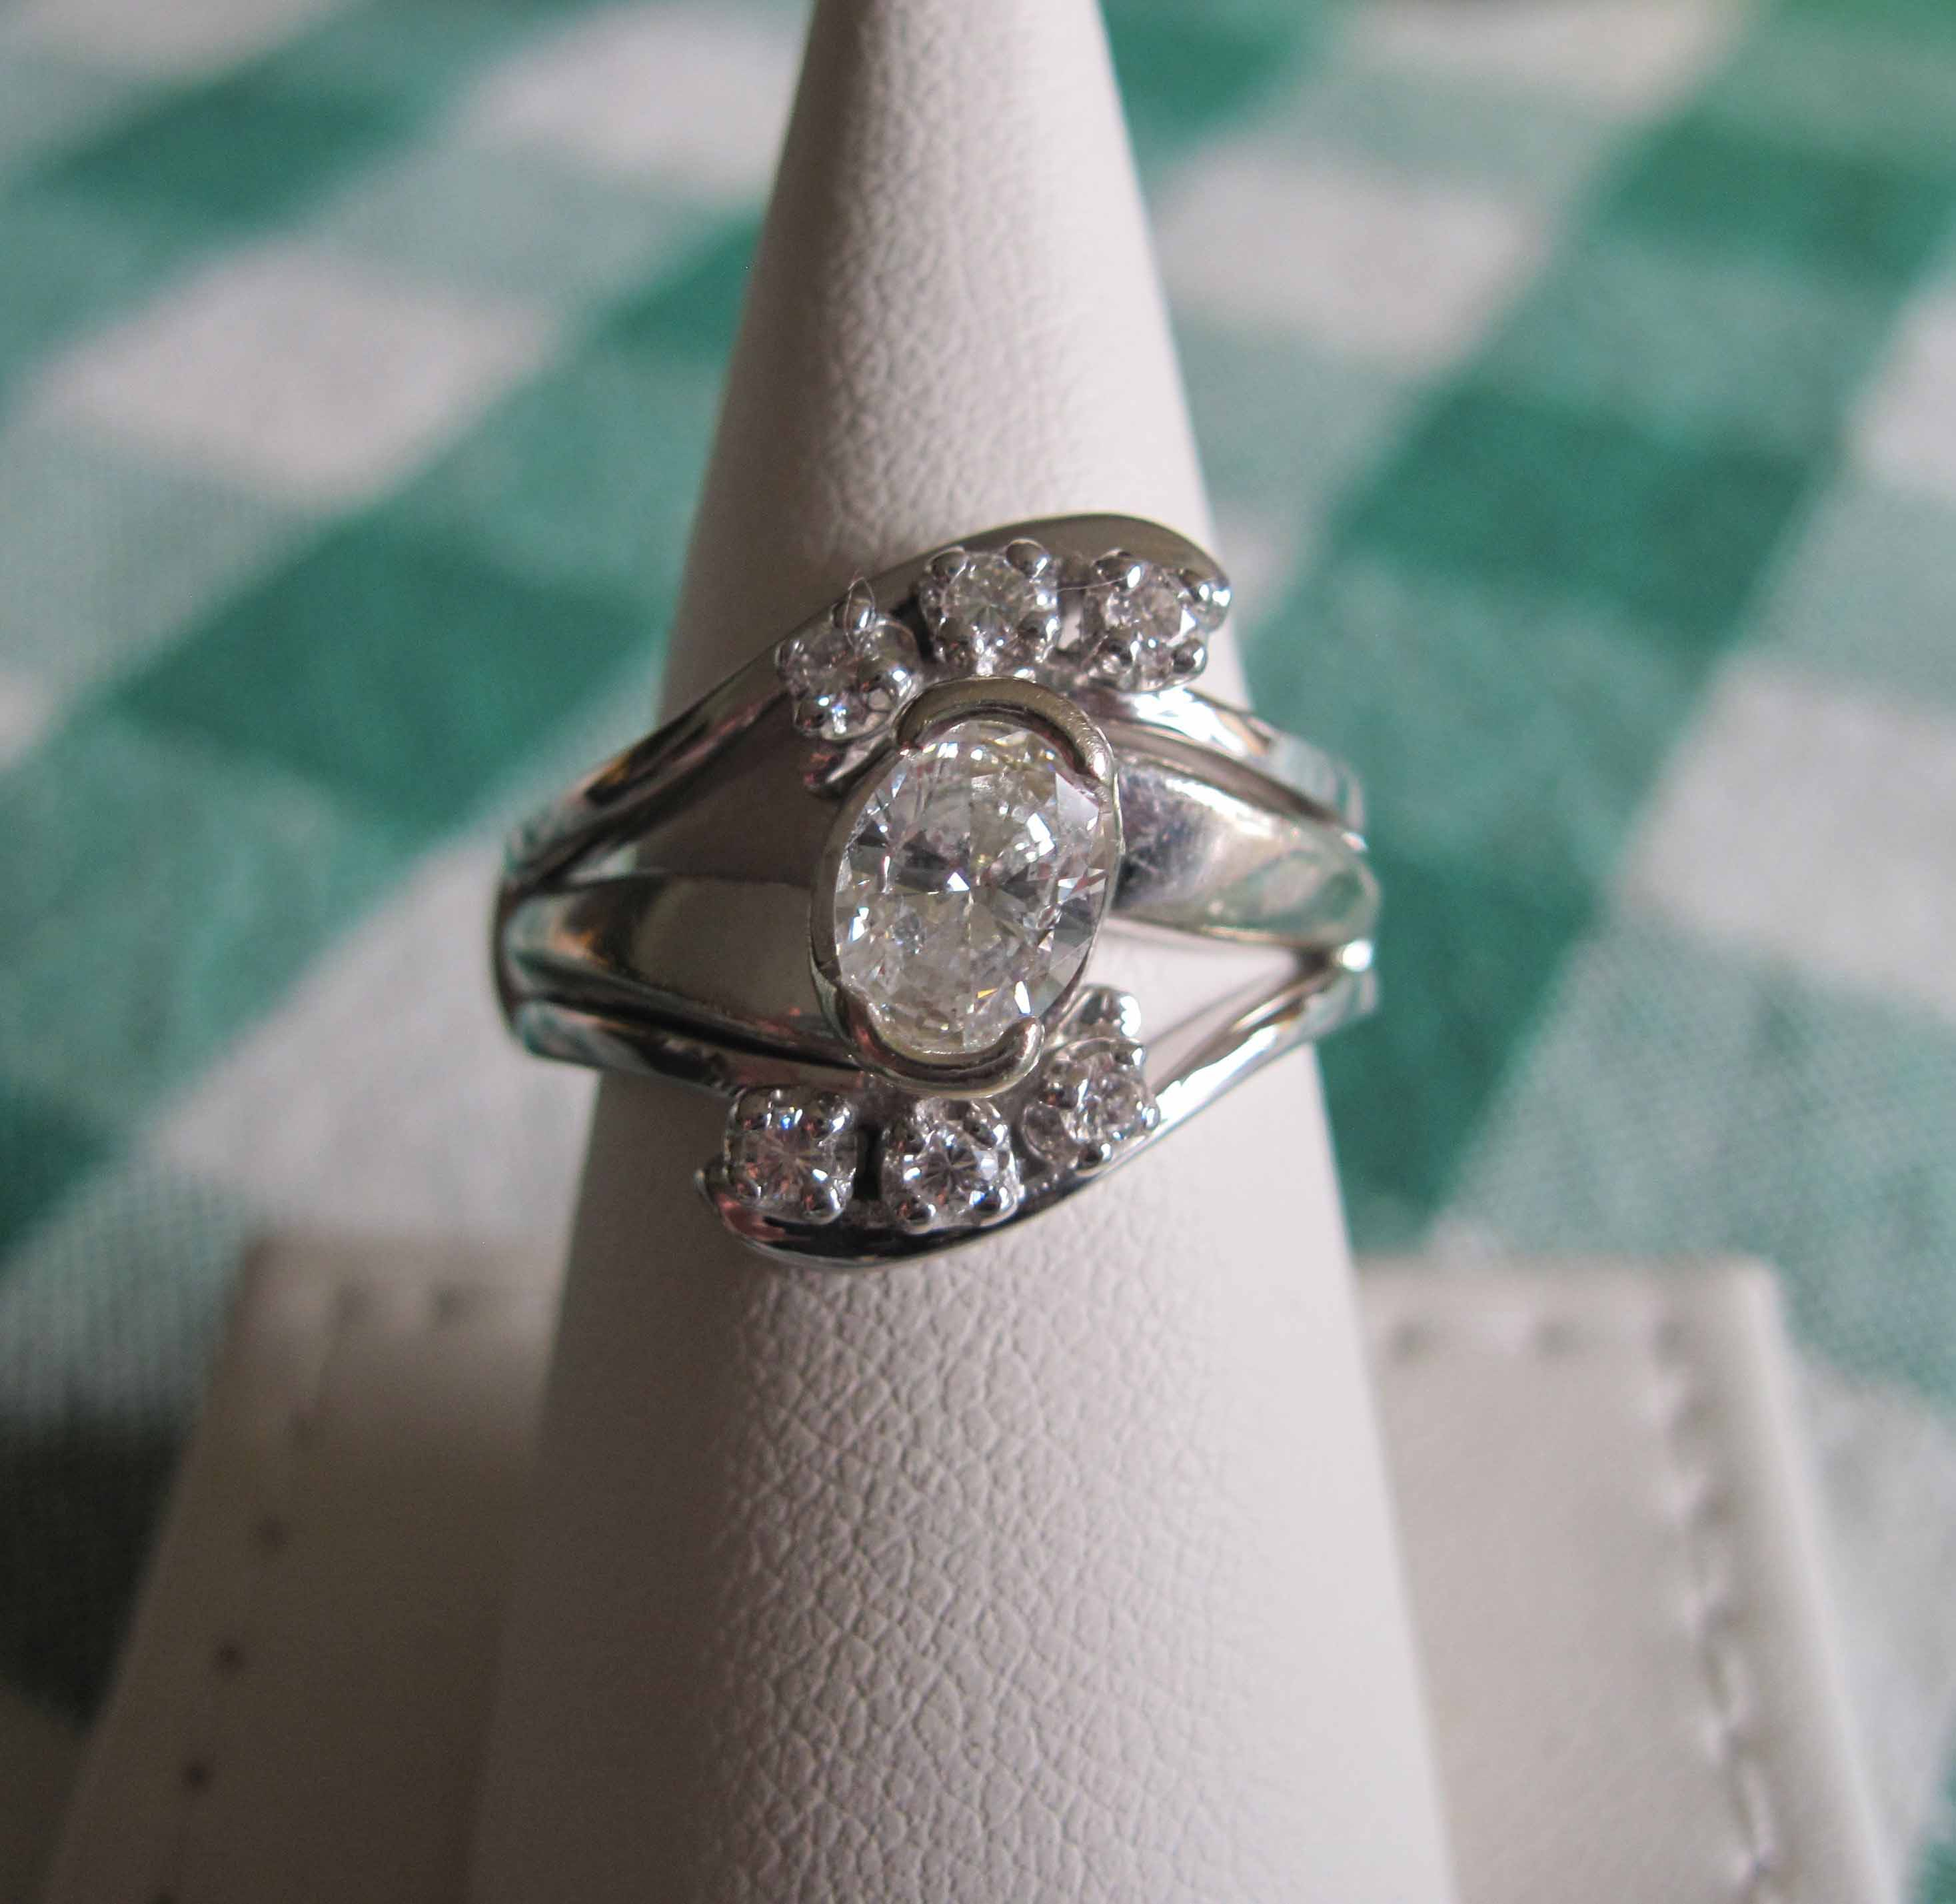 bespokefinejewelry handmade wedding rings Custom diamond ring wrap for an oval engagement ring